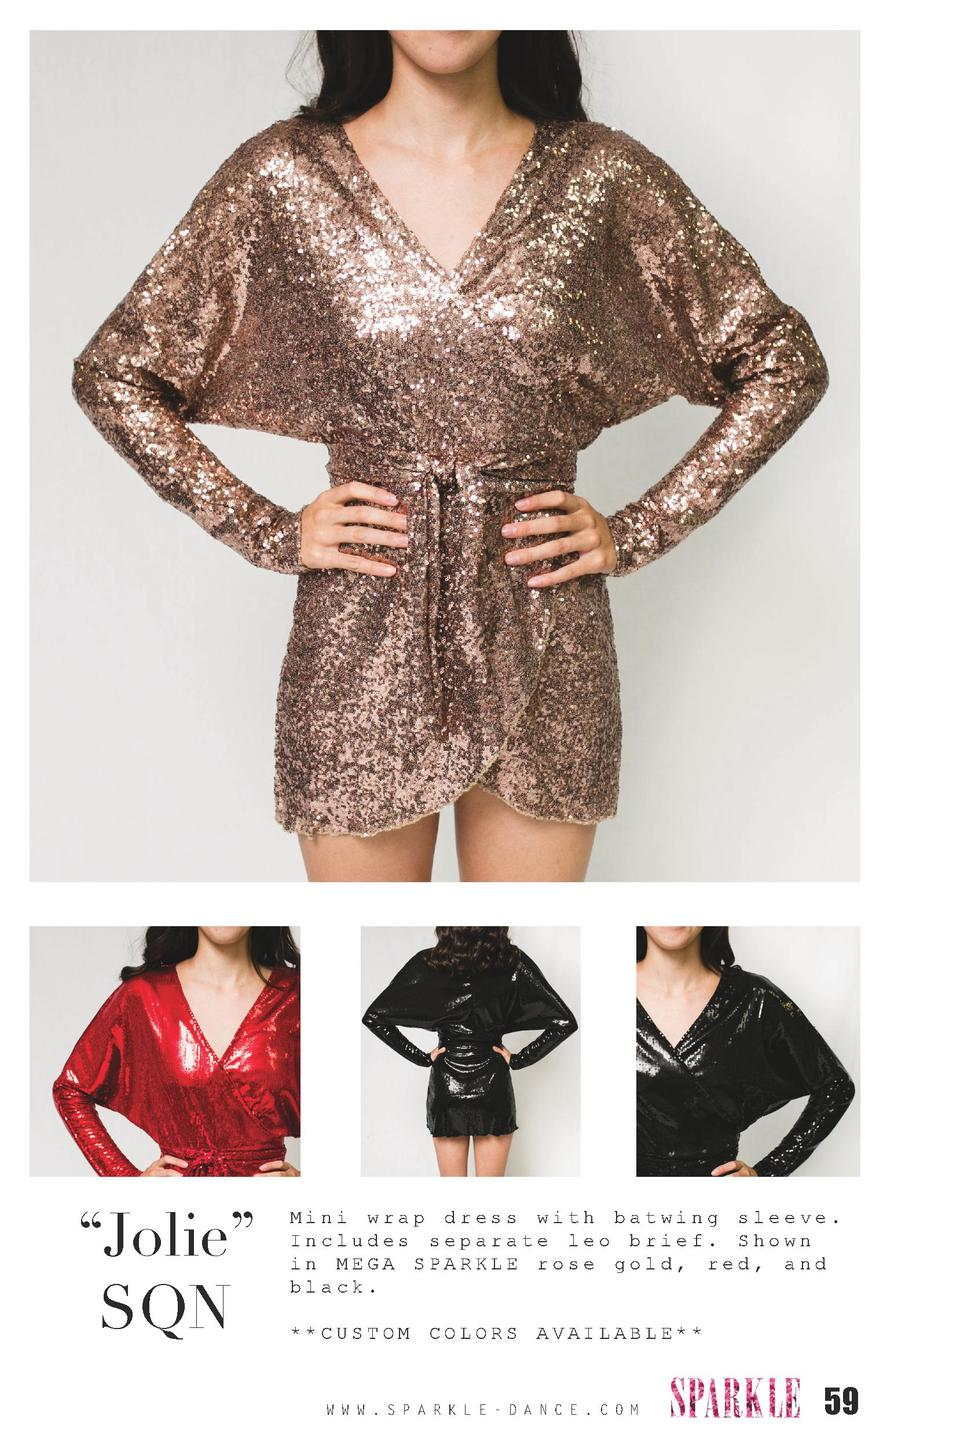 Jolie    SQN  Mini wrap dress with batwing sleeve. Includes separate leo brief. Shown in MEGA SPARKLE rose gold, red, a...